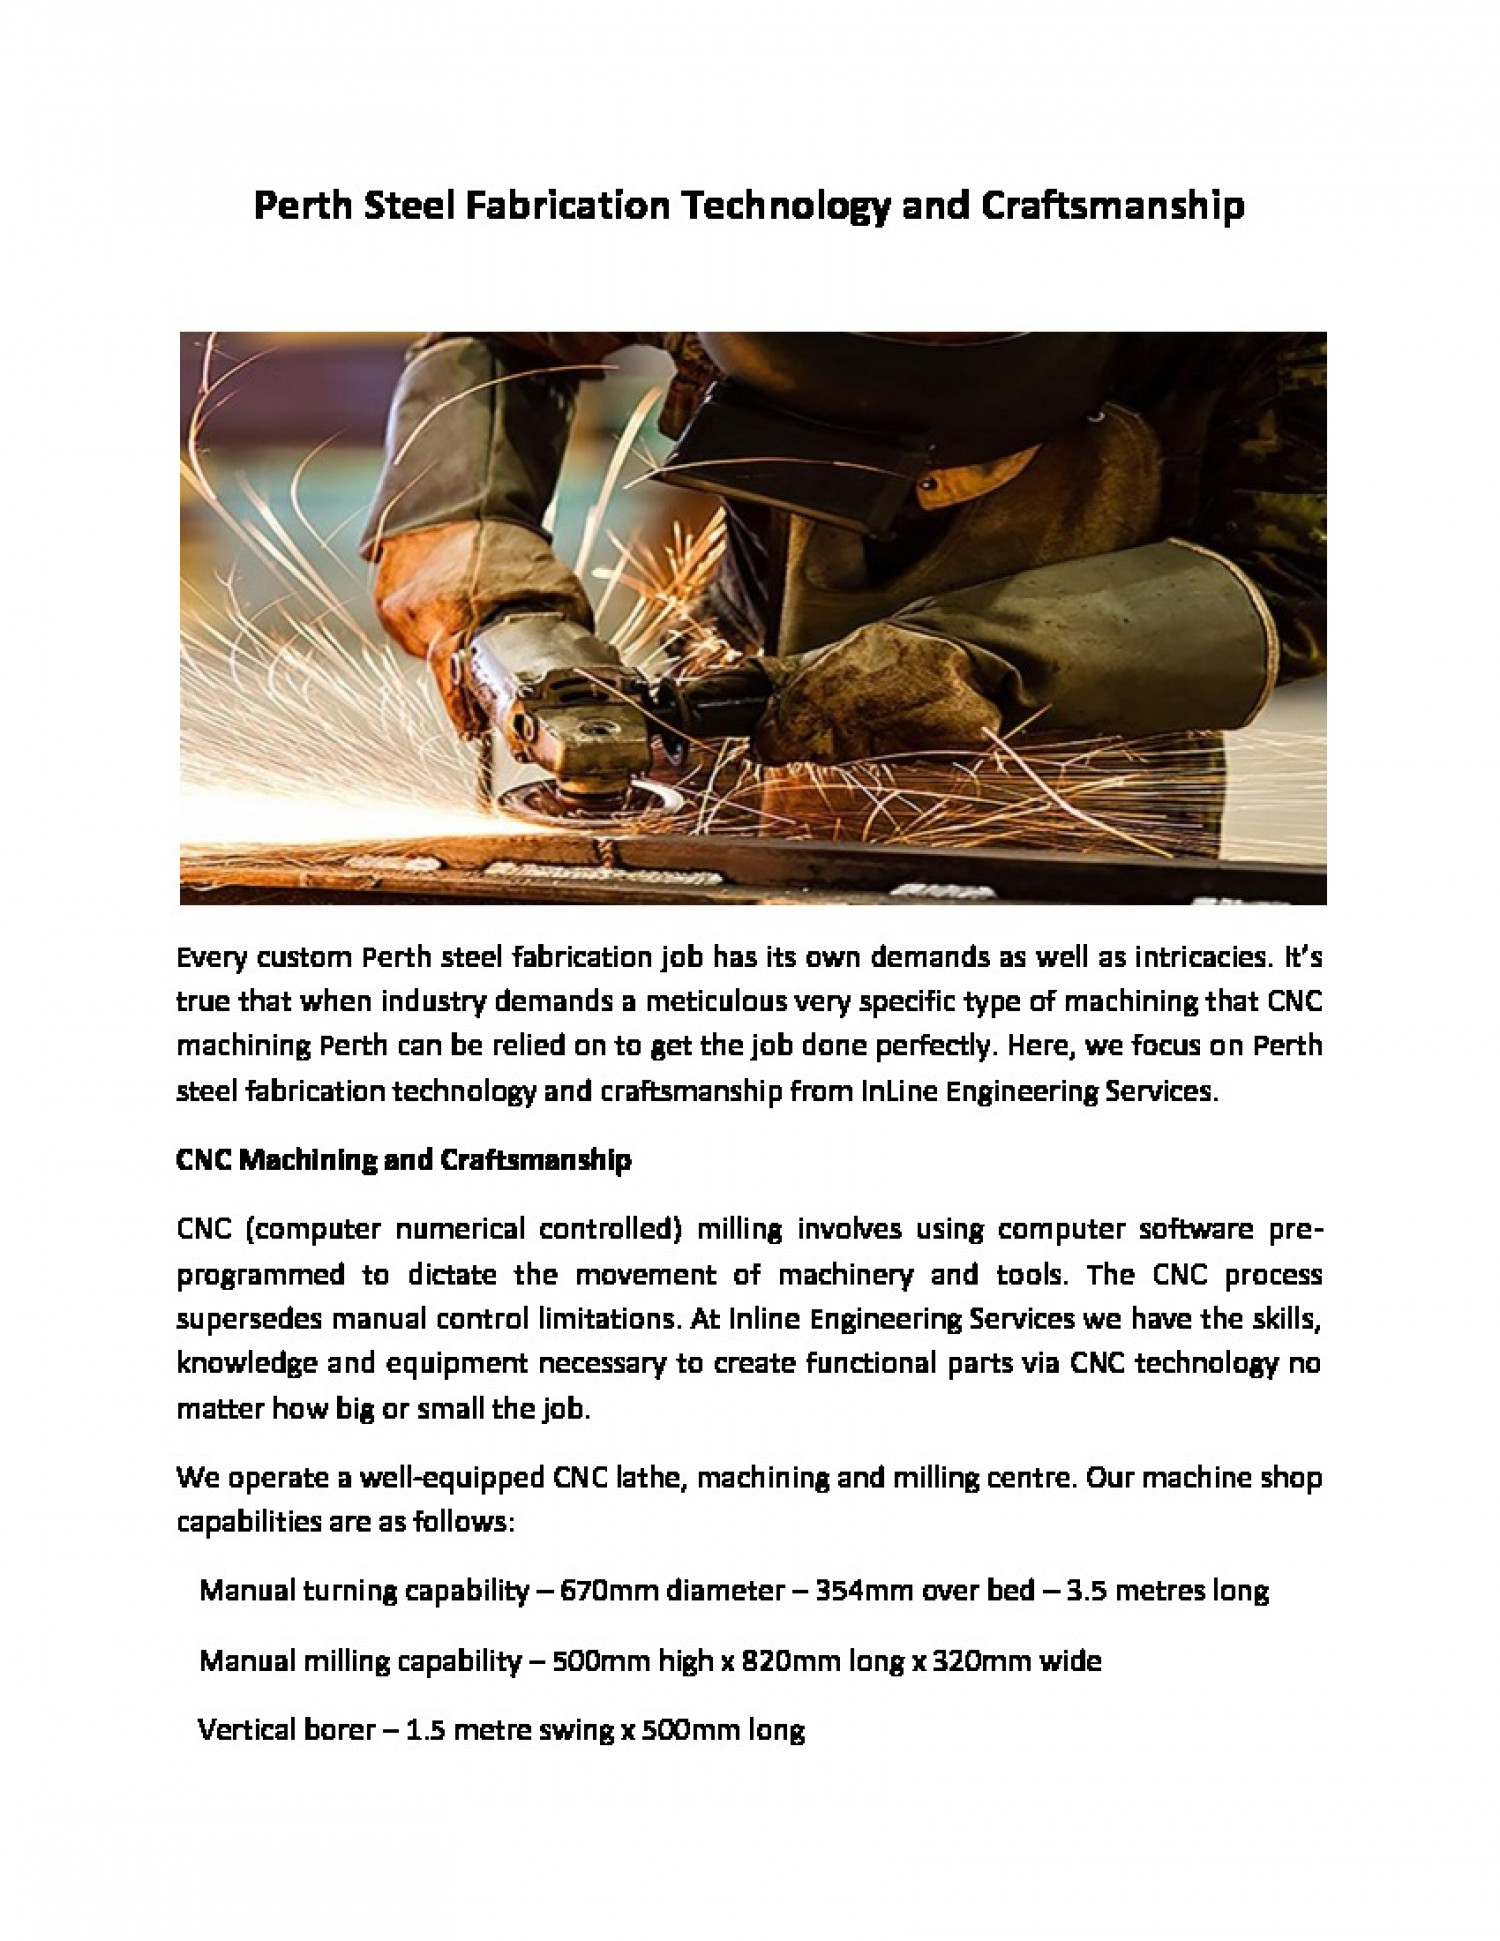 Perth Steel Fabrication Technology and Craftsmanship Infographic